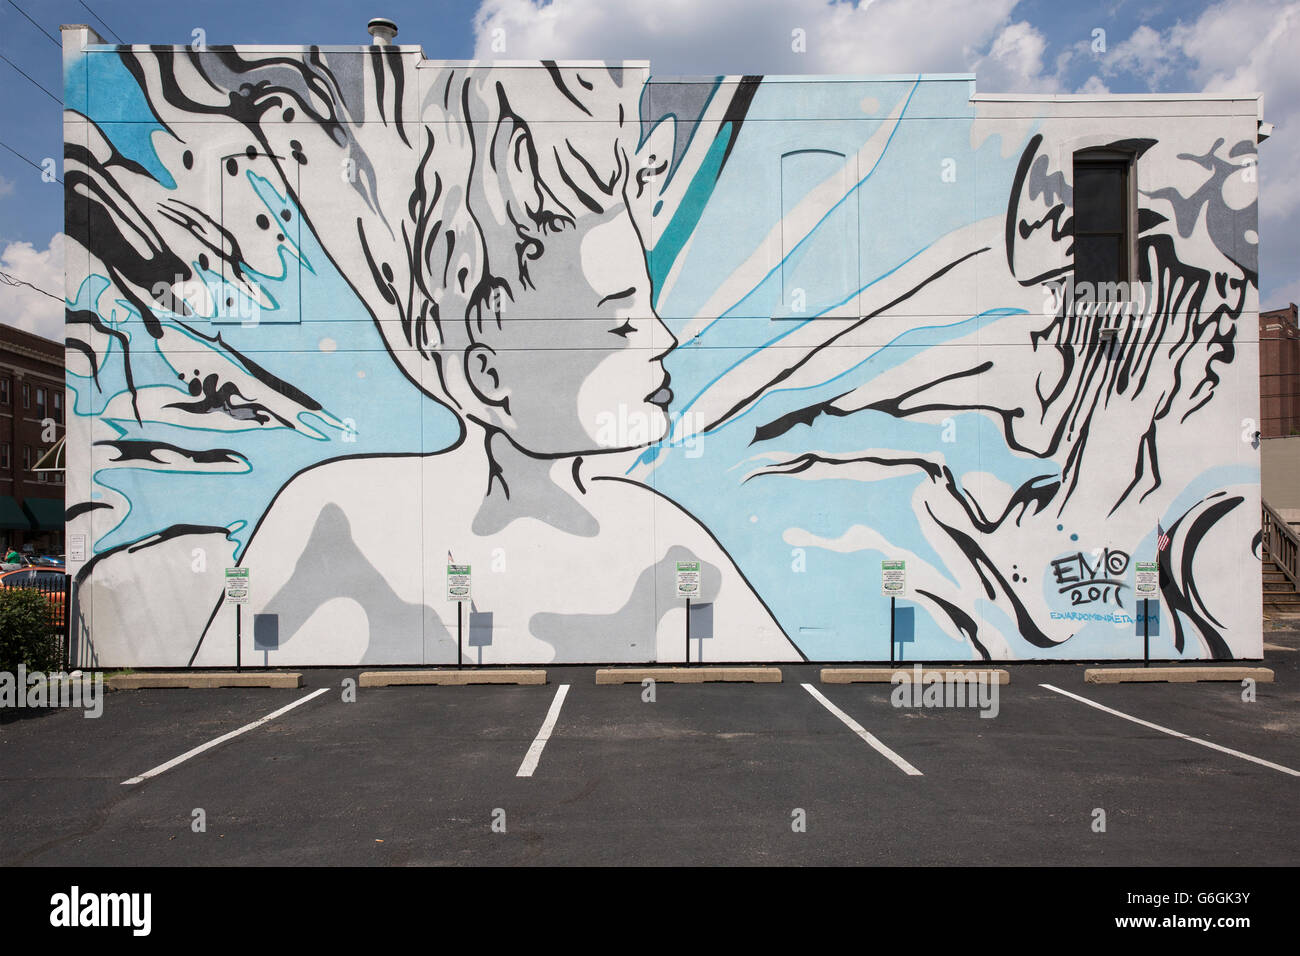 mural building stock photos mural building stock images alamy public wall mural depicting a woman indianapolis indiana stock image